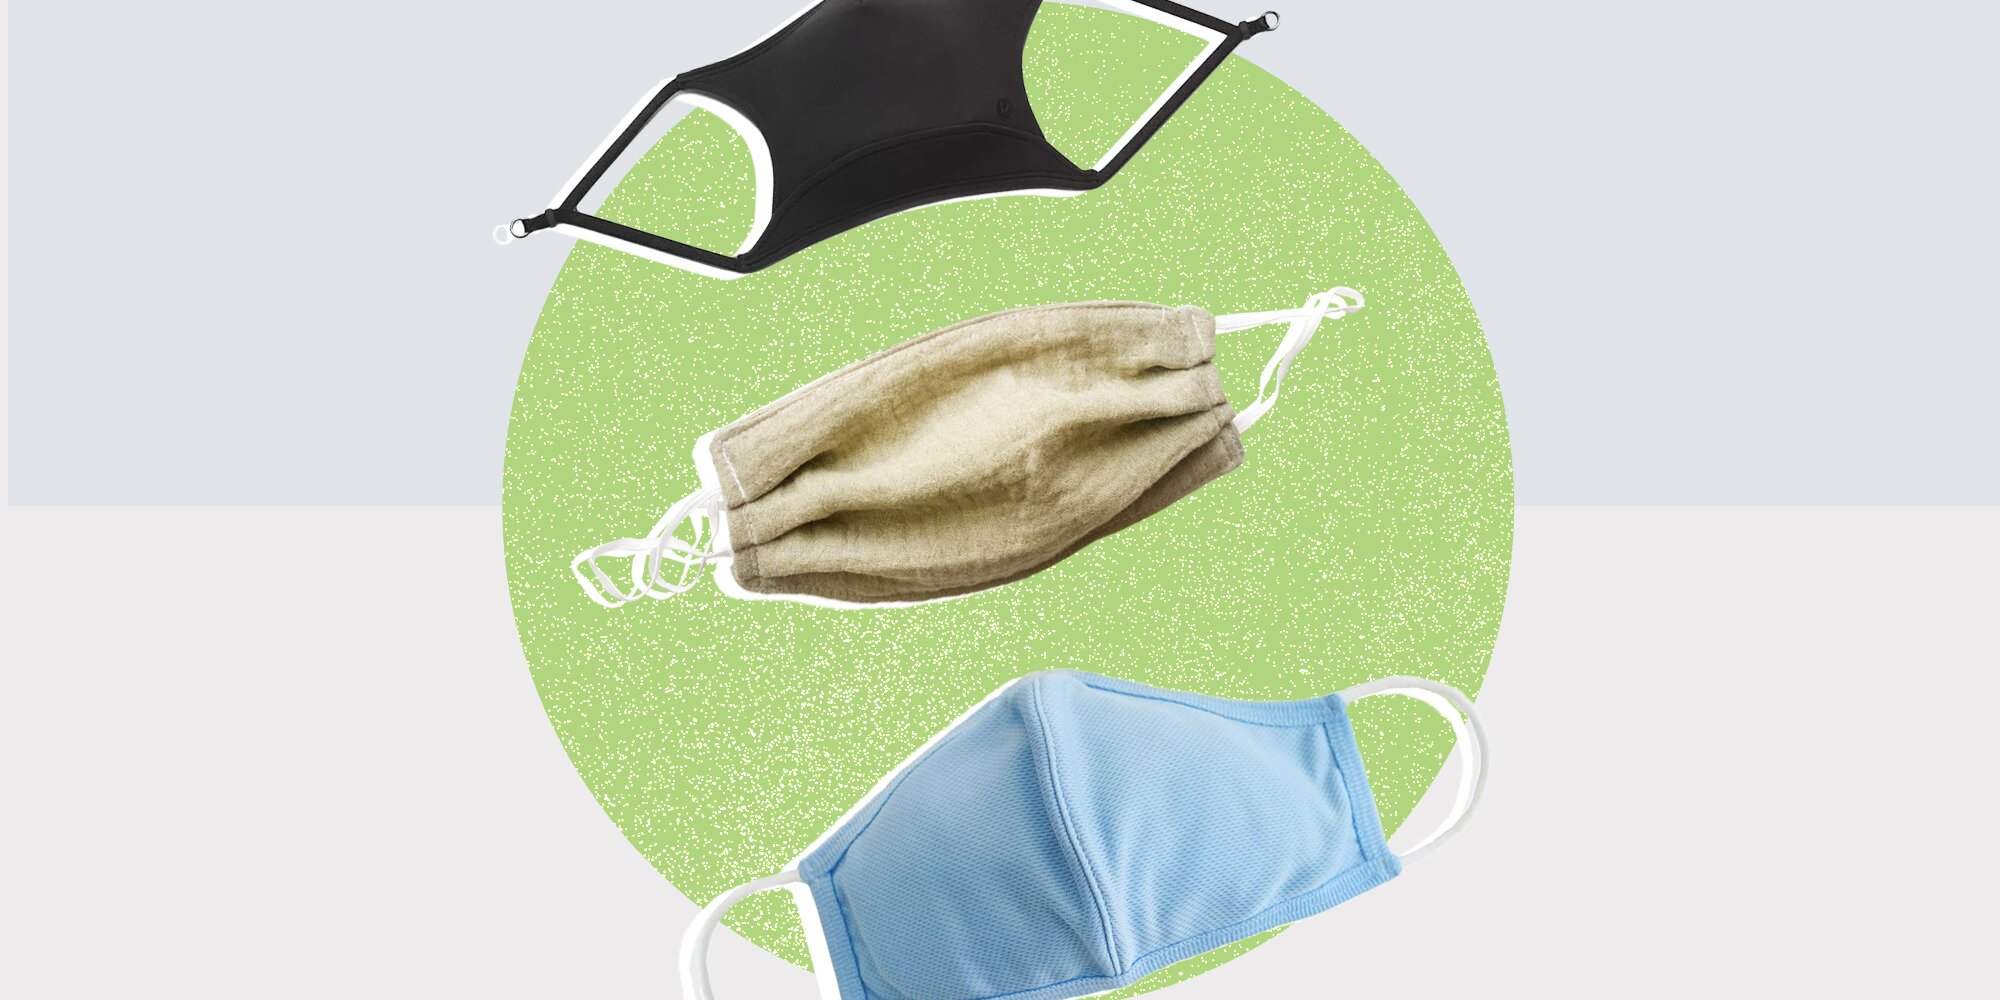 3 Lightweight Face Masks I'm Buying to Stay Cool and Protected This Summer